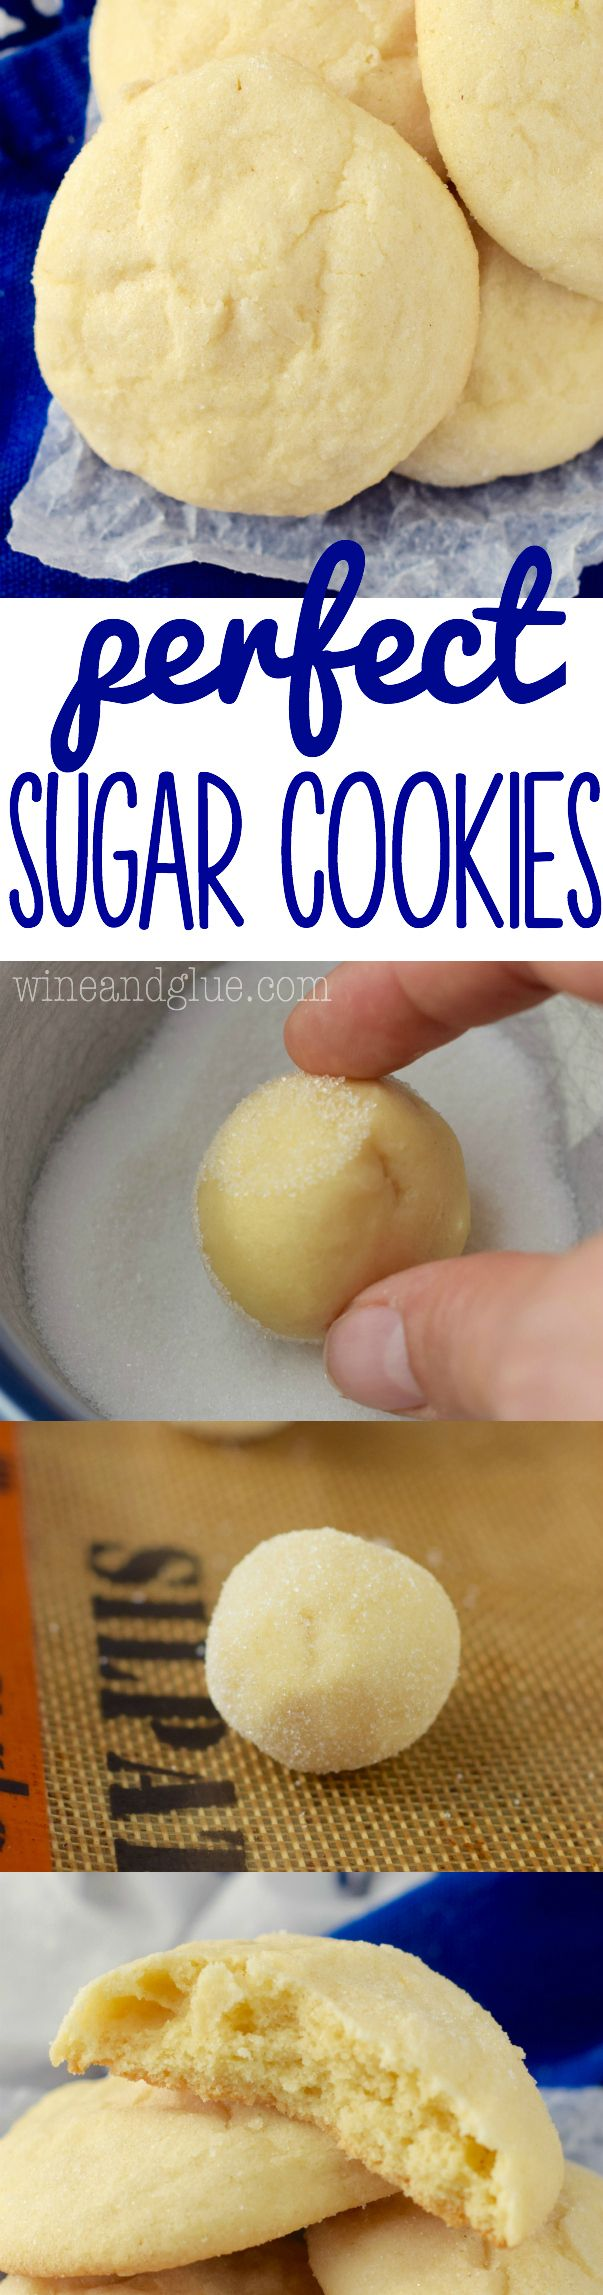 These are the perfect sugar cookies! Buttery, delicious, and addictive!: